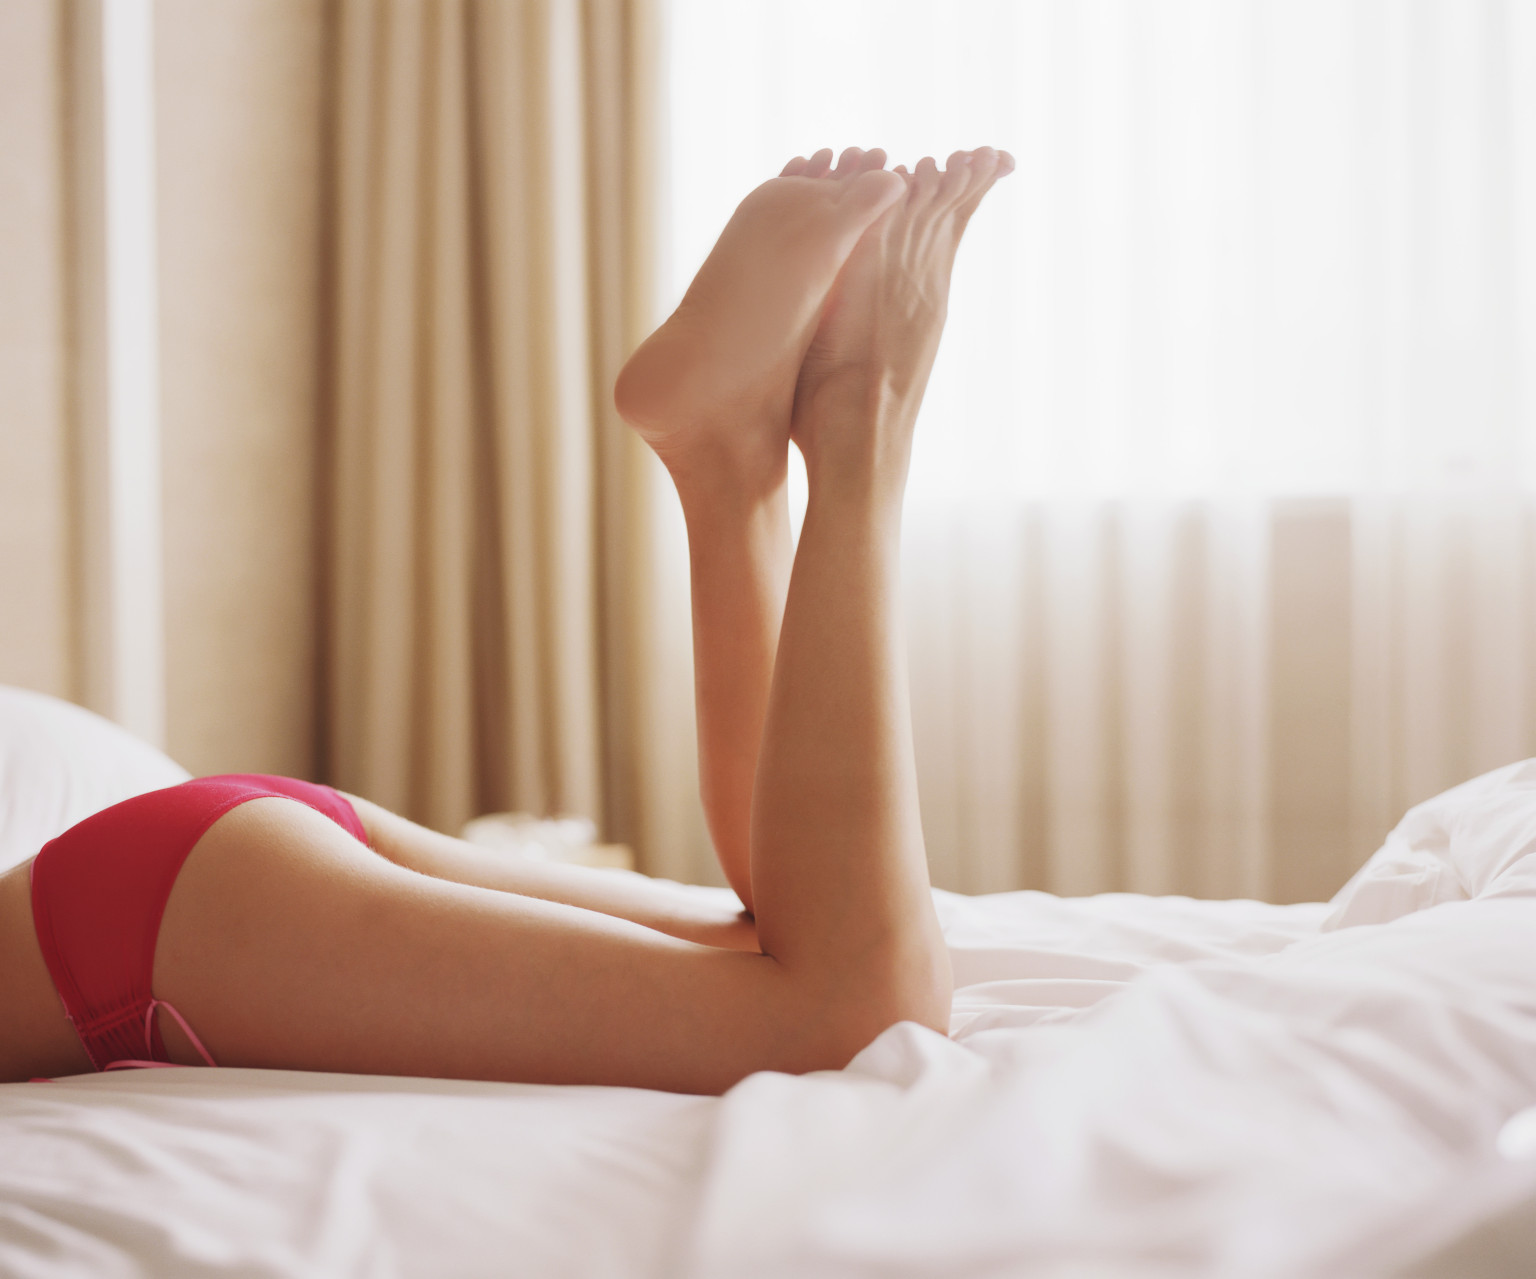 17 bizarre sex facts you probably didn't know | huffpost